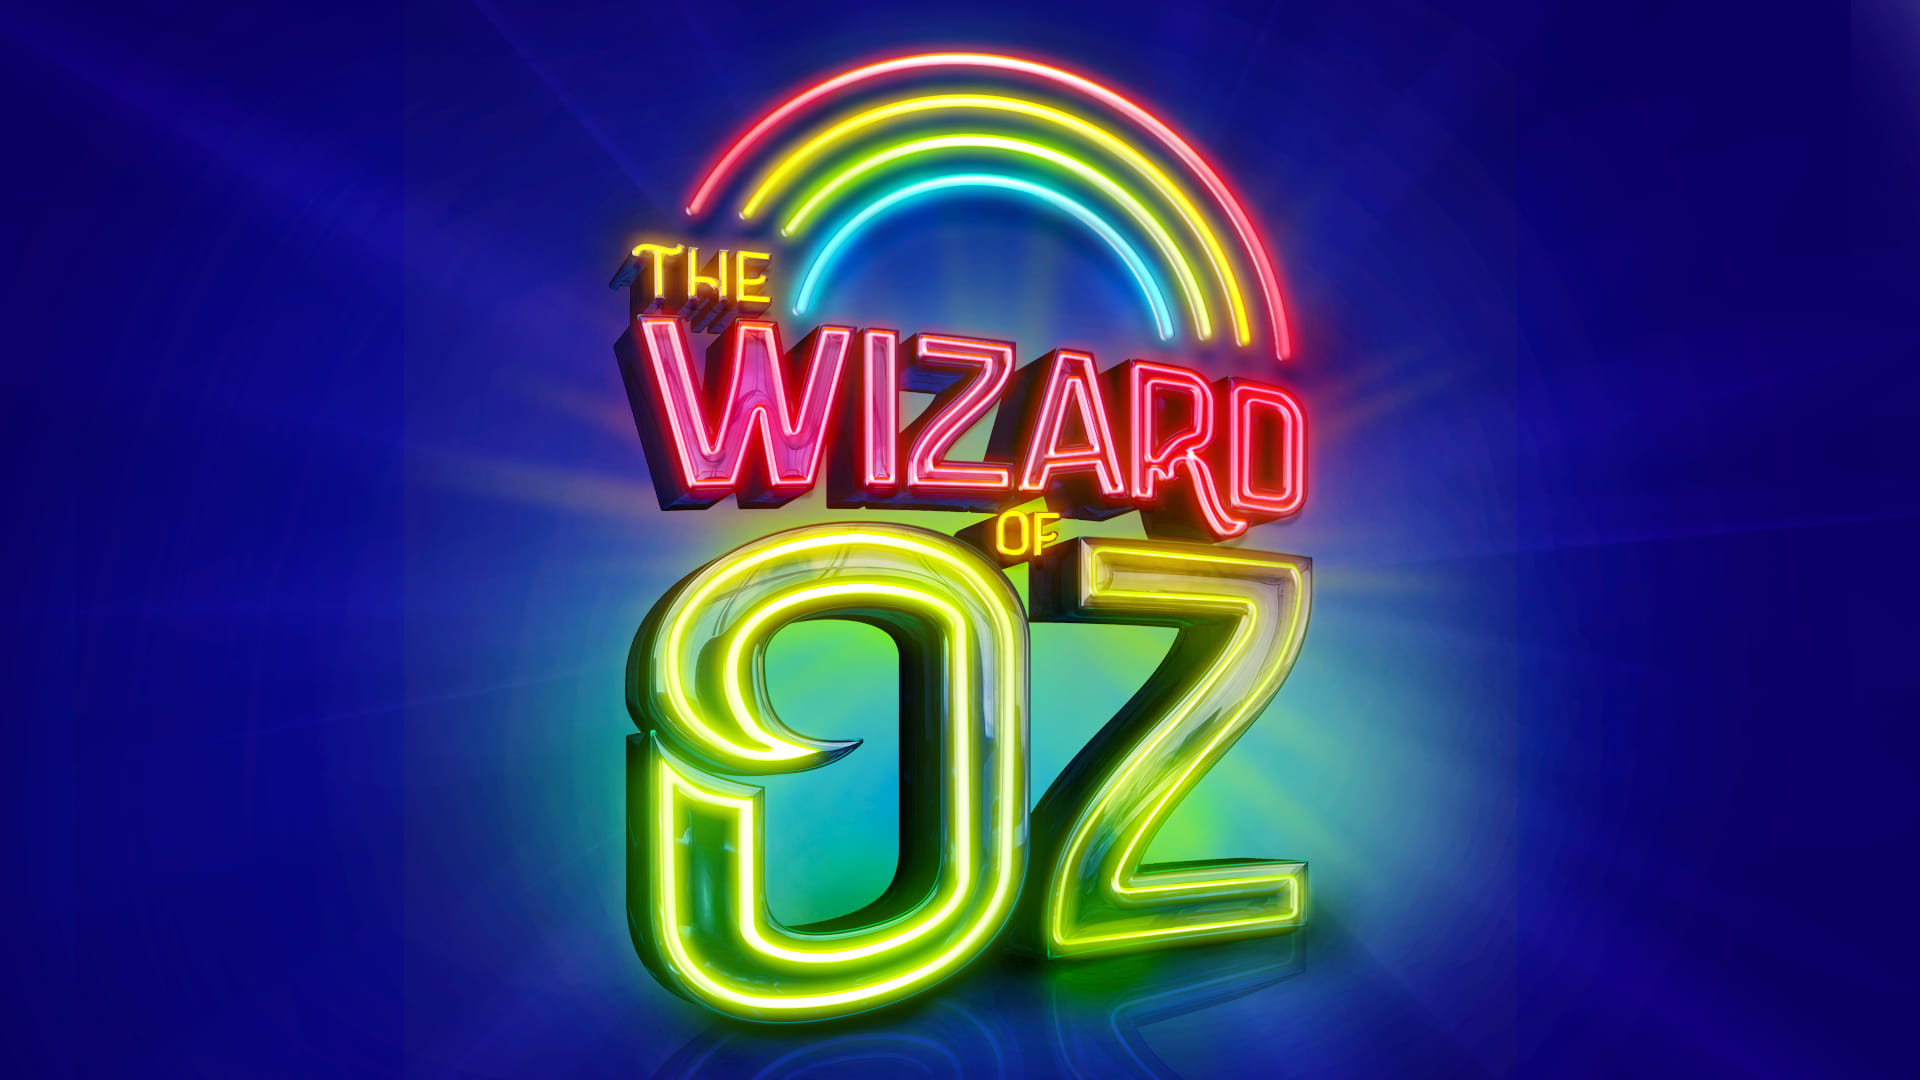 WLOS Presents The Wizard of Oz header